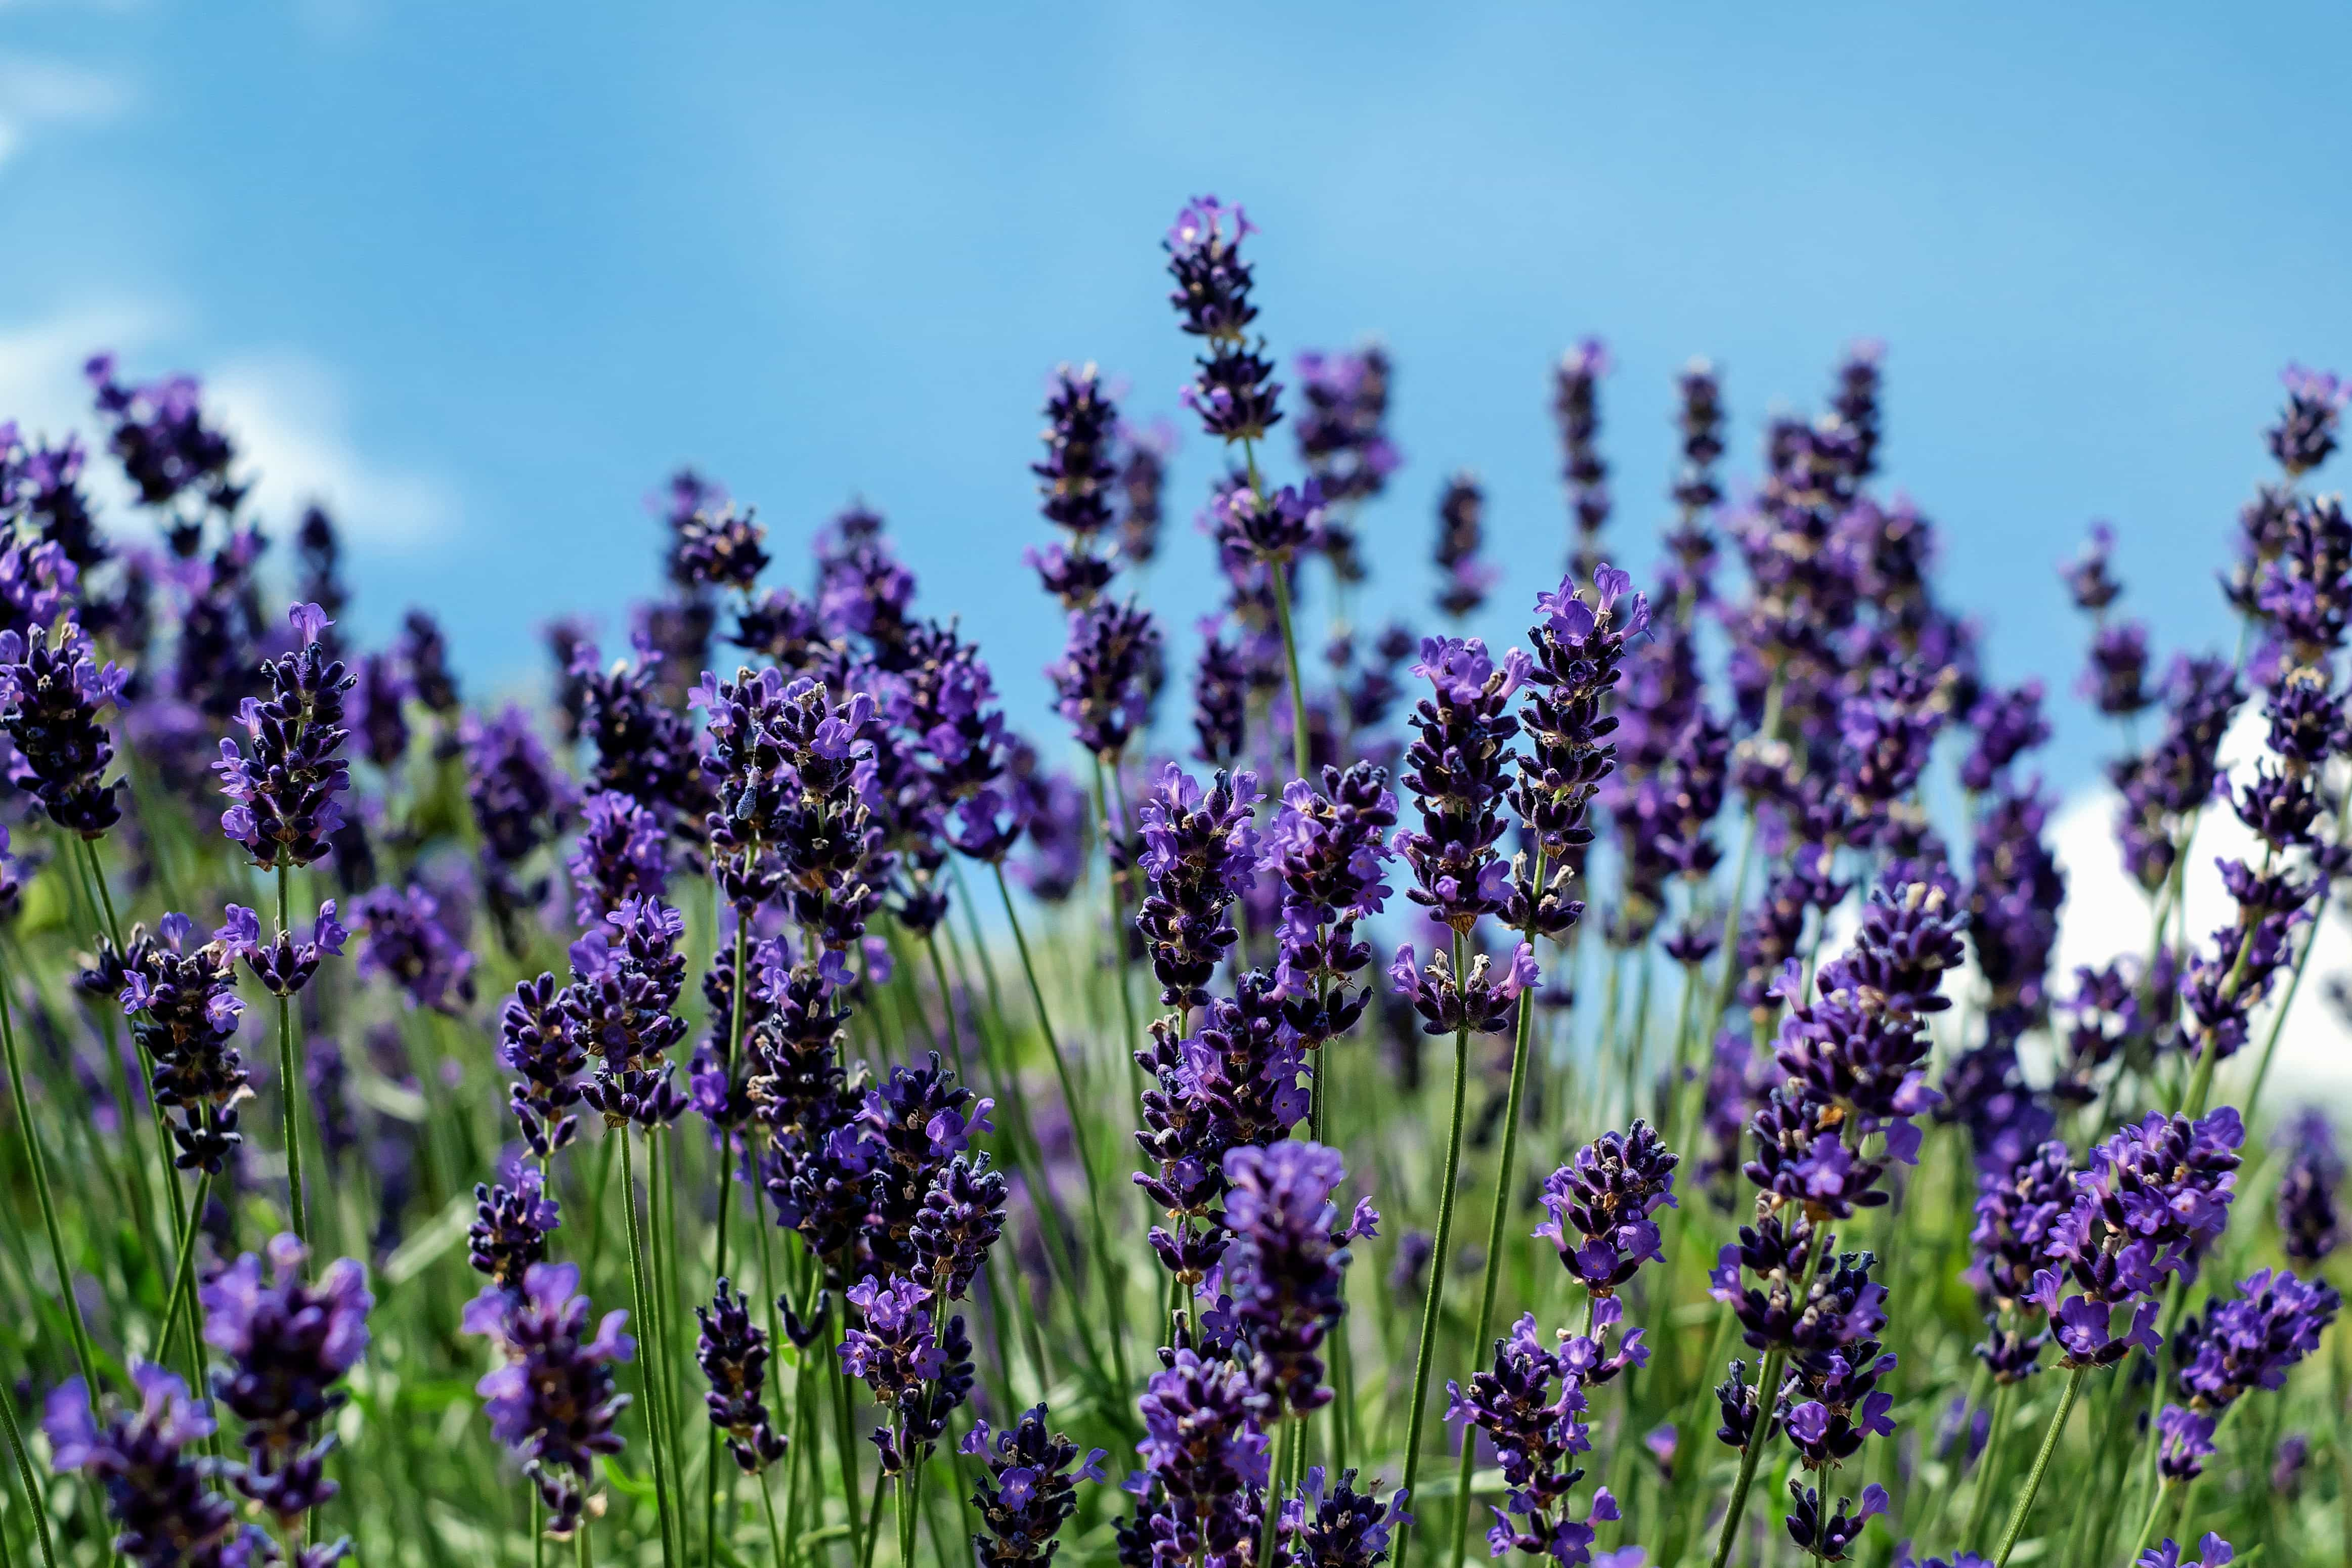 free picture flora perfume field nature lavender flower blue sky. Black Bedroom Furniture Sets. Home Design Ideas